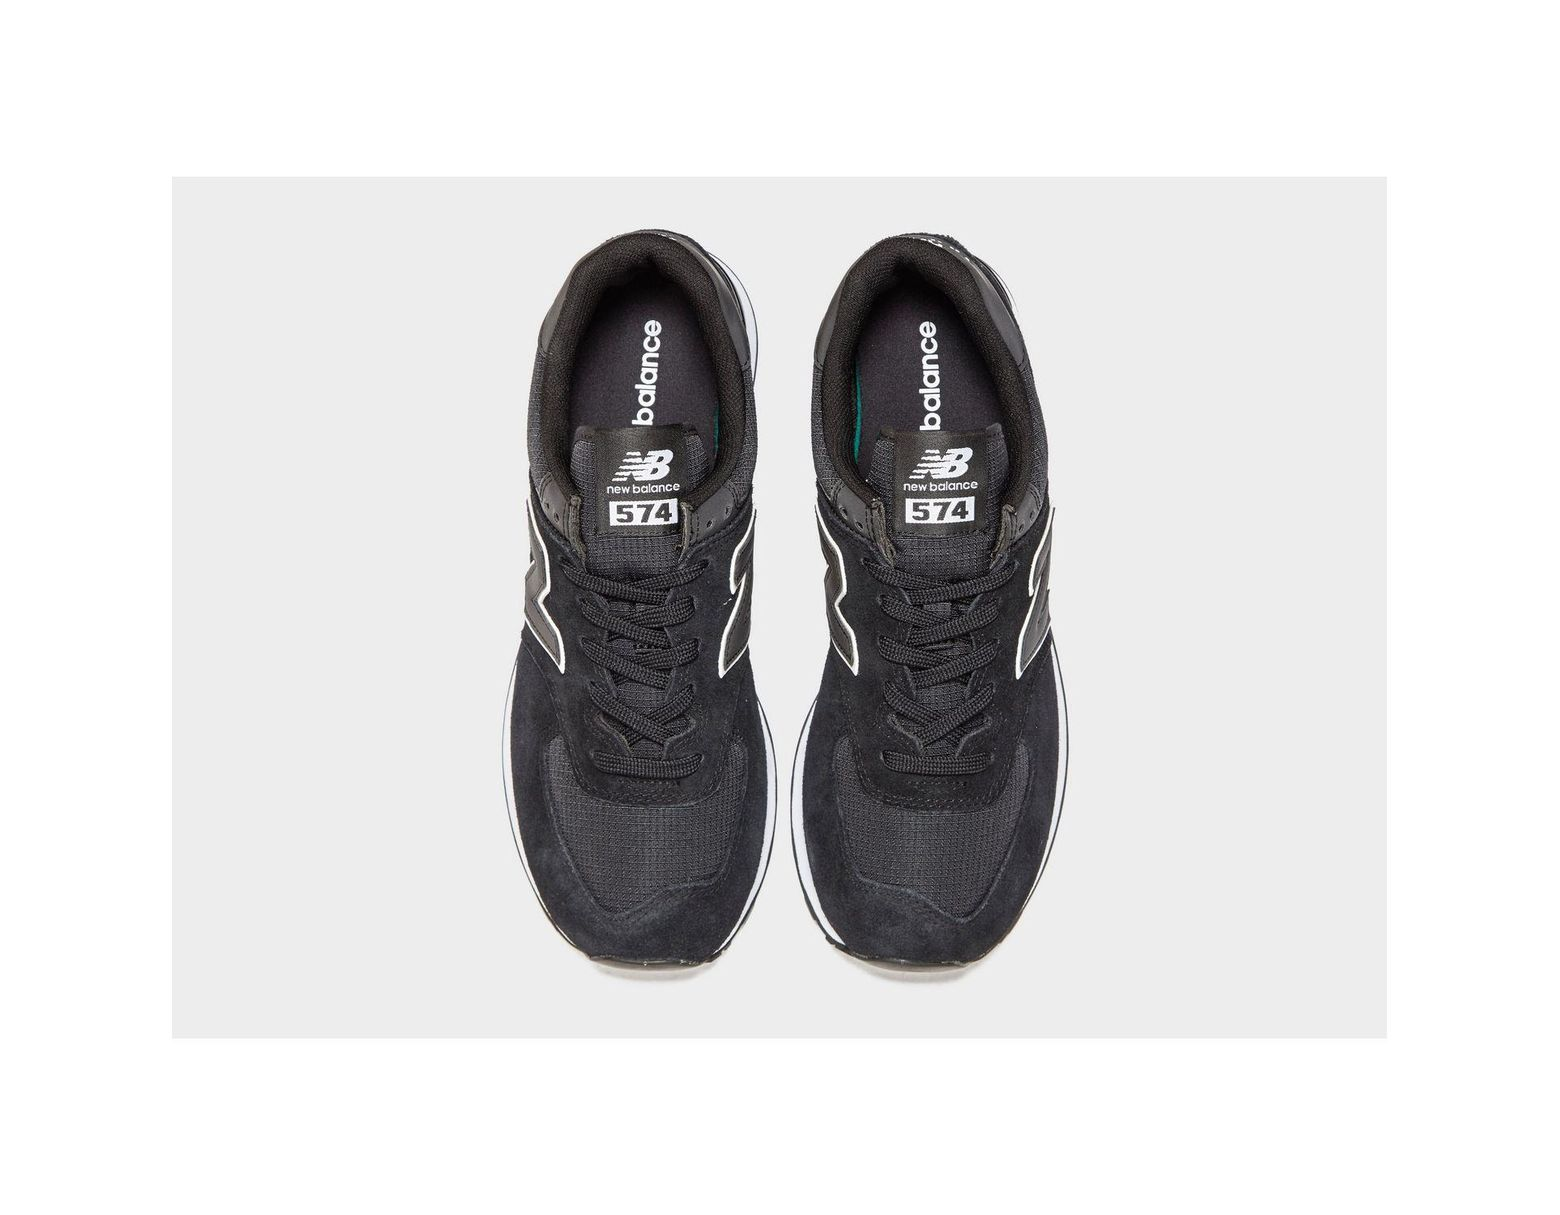 6d3376fc784 Lyst - New Balance 574 Ripstop in Black for Men - Save 30%